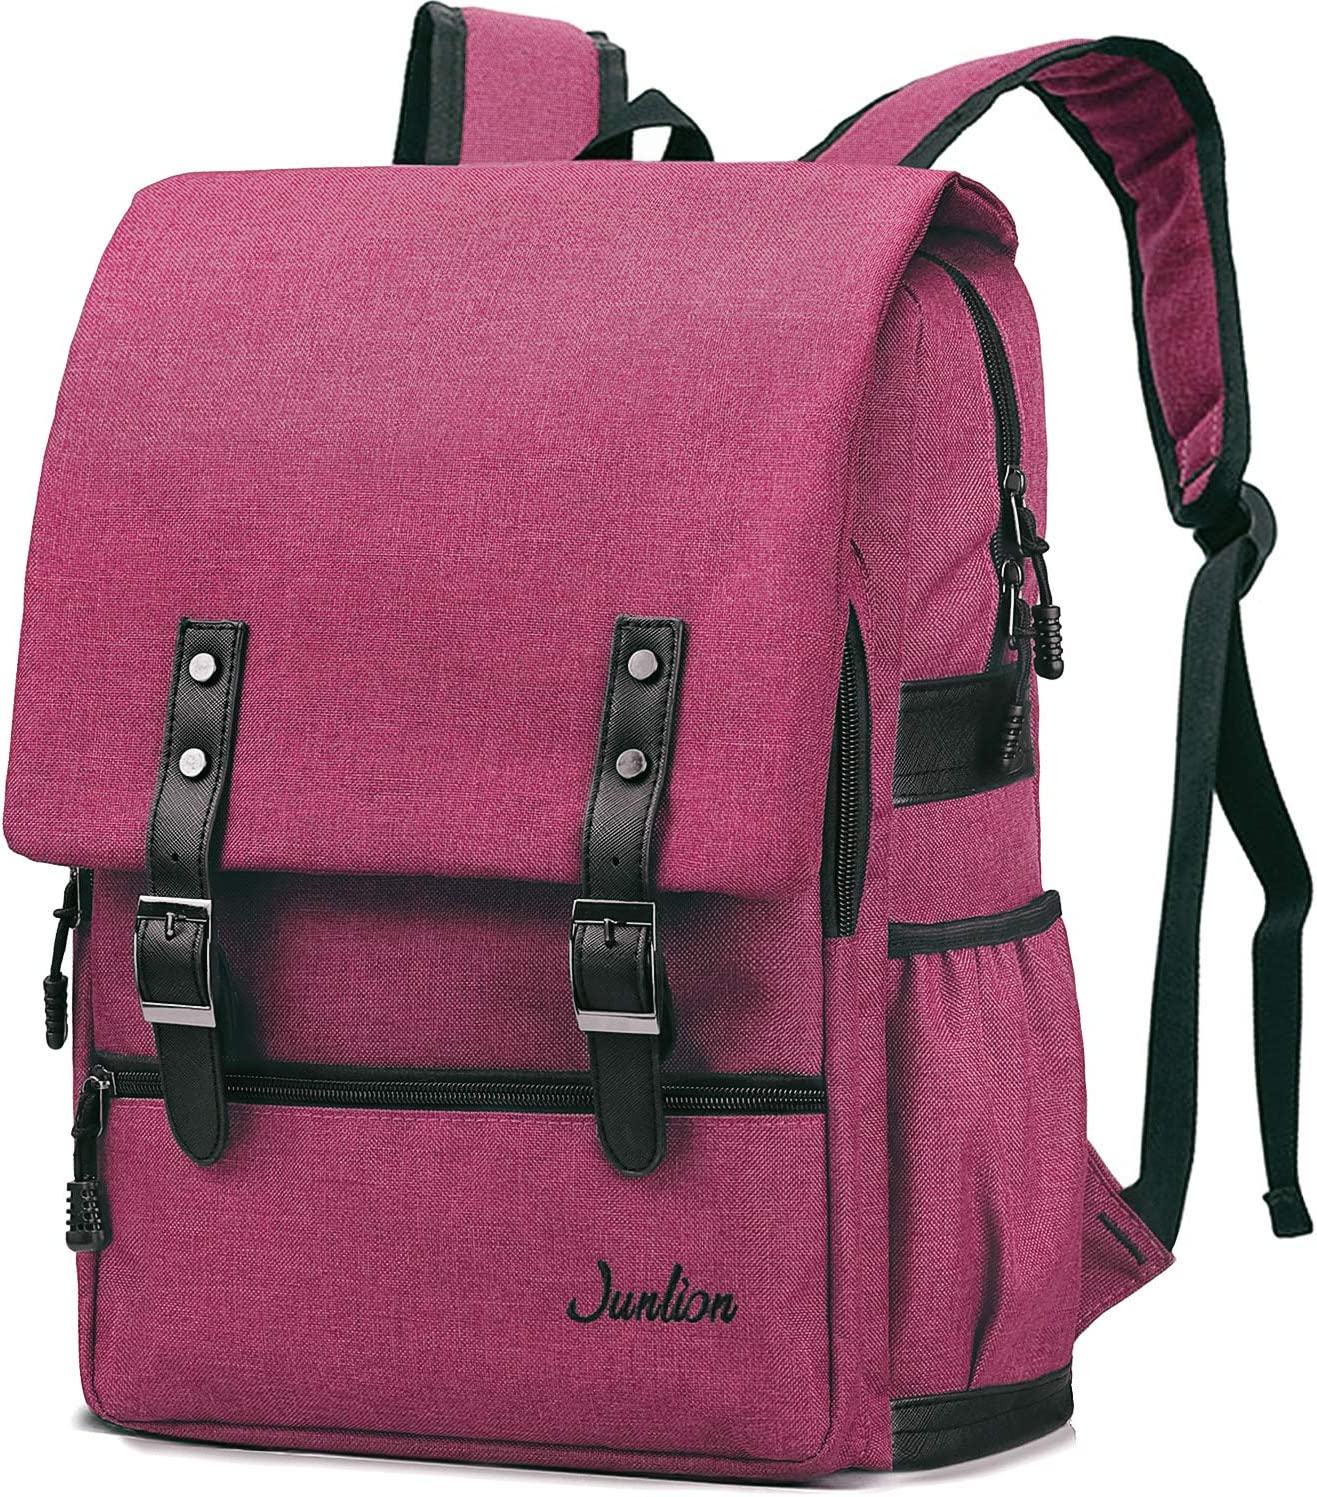 Junlion Solid Color Laptop Backpack for College Student Casual Rucksack Canvas Travel Bag for Preppy Freshman Wine Red